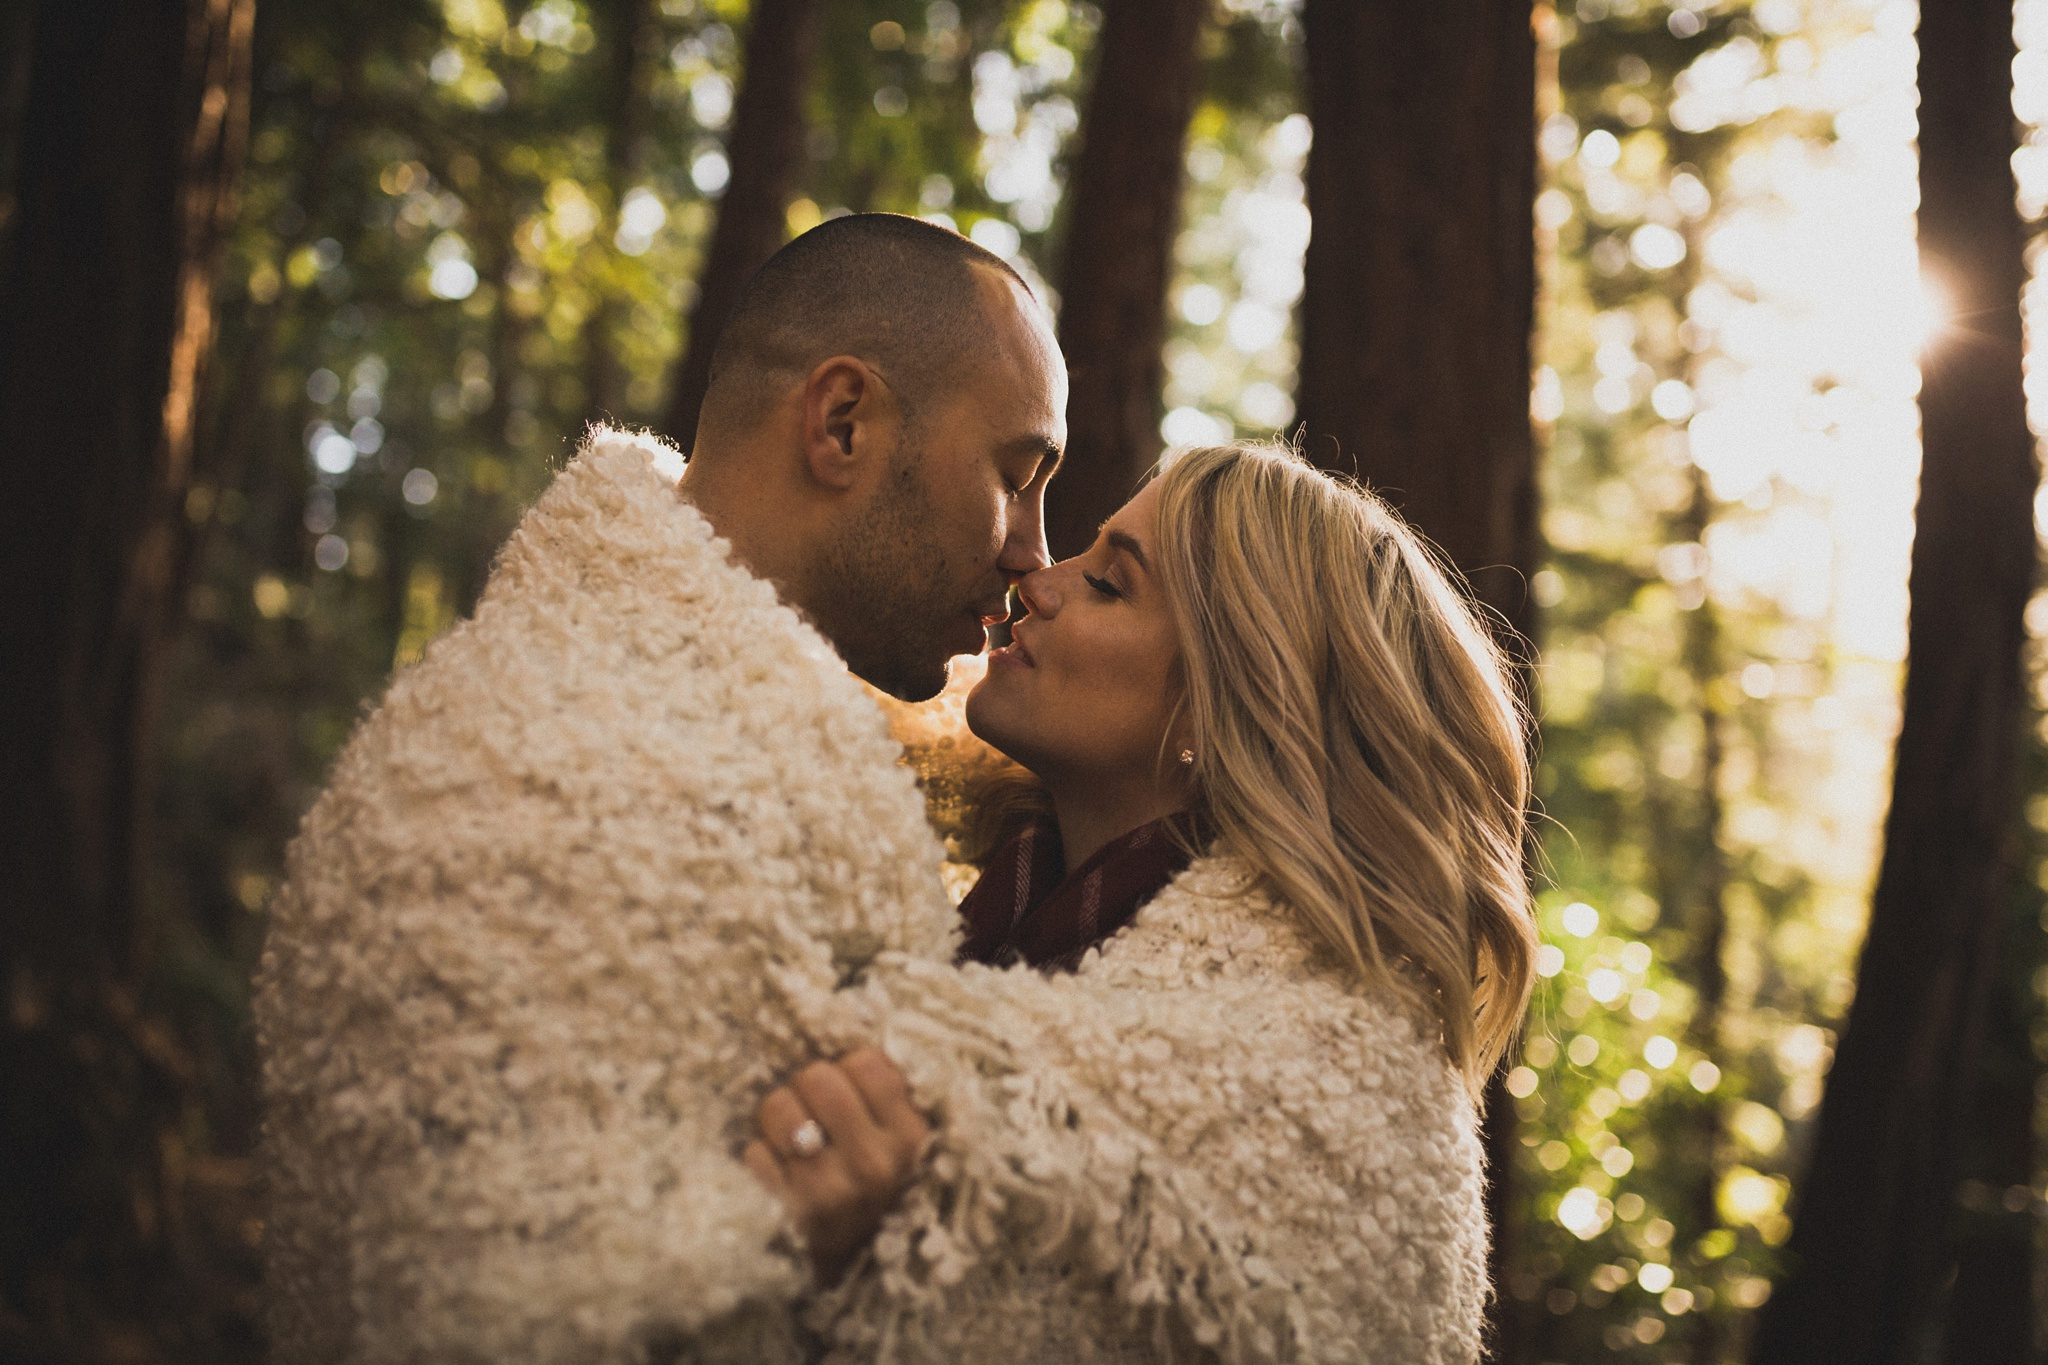 180211_engagement_stephanie_muir_woods_mill_valley_california_danielle_alysse_photography_sacramento_photographer_sneak_peek_2_WEB.jpg